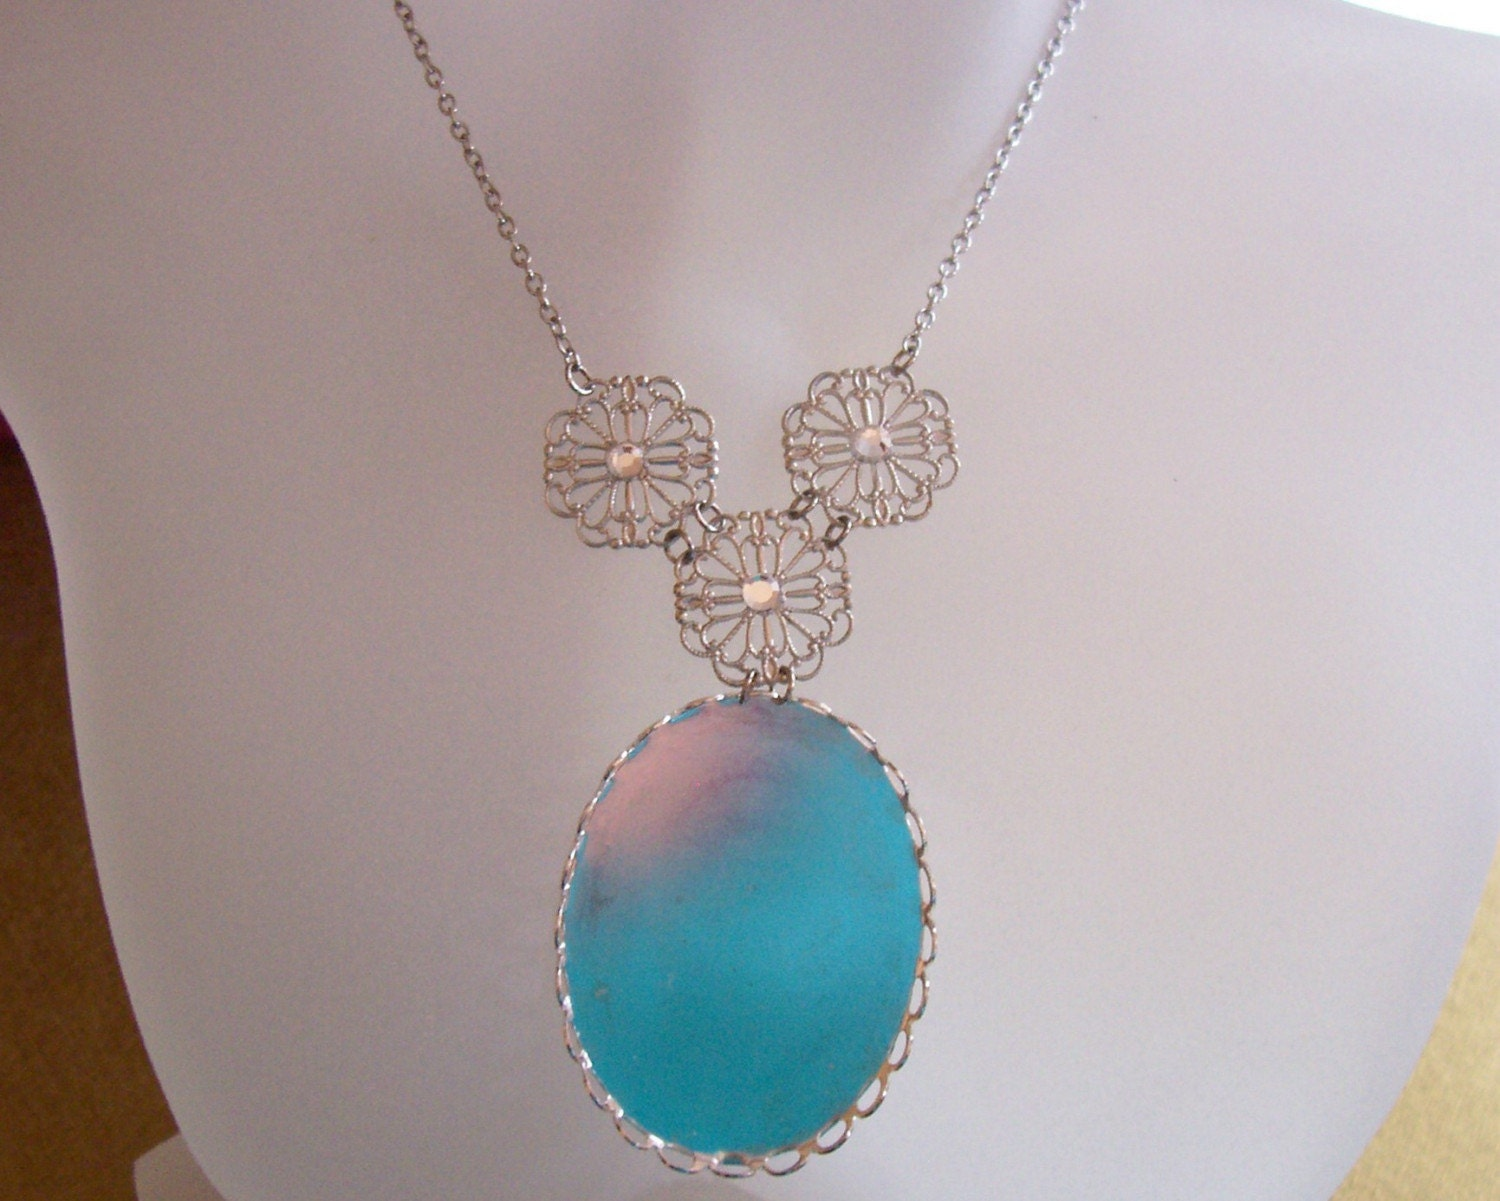 DIY -- The Edwardian Collection - Fancy Shaped Filigree Silver Y Necklace with Swarovski Crystals - For Your 40x30mm Cameo or Cabochon - Customize It - (ALEXANDRA)